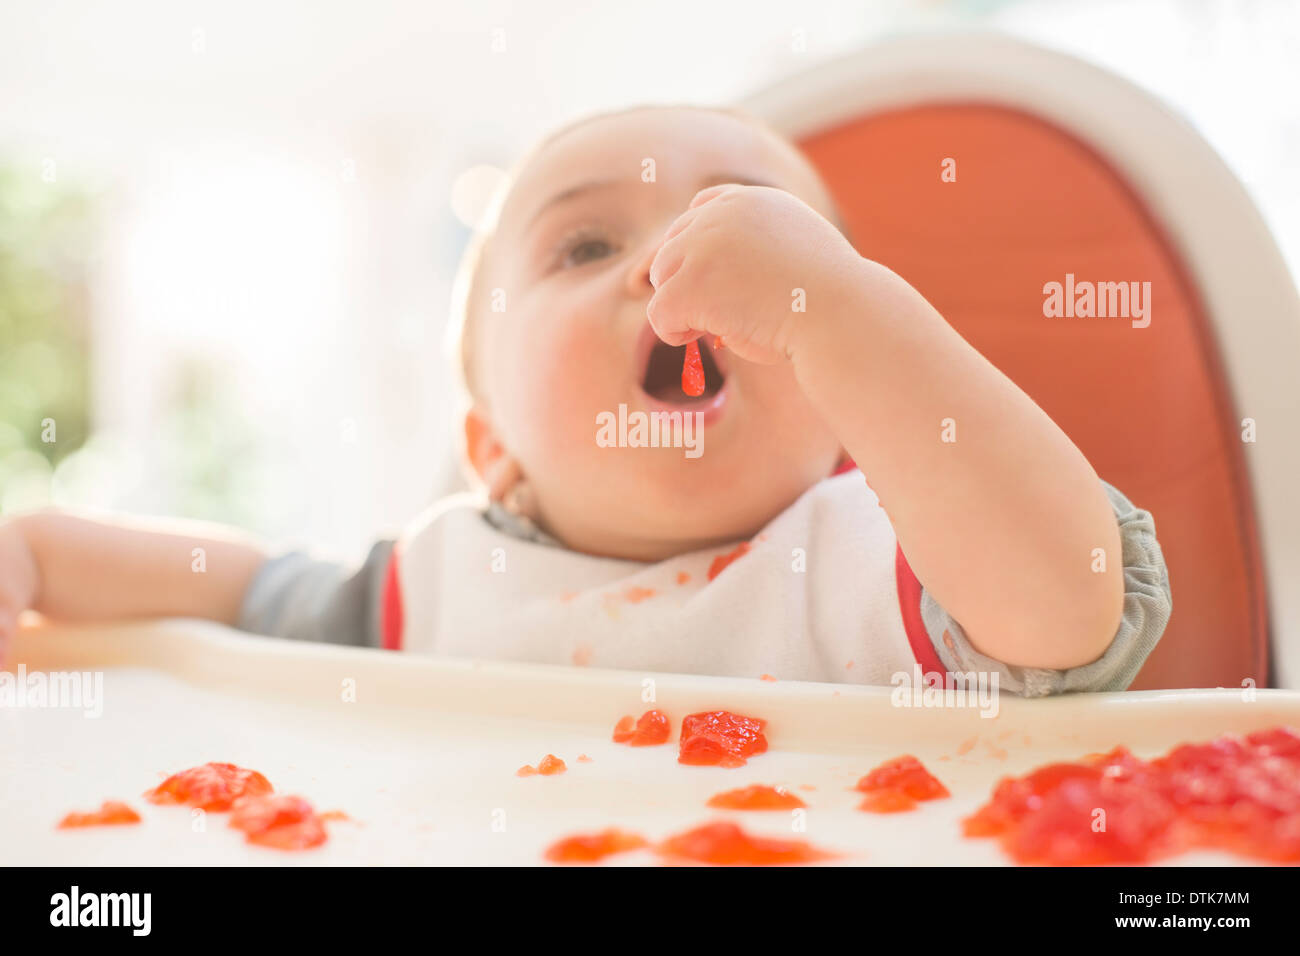 Baby boy eating in high chair - Stock Image